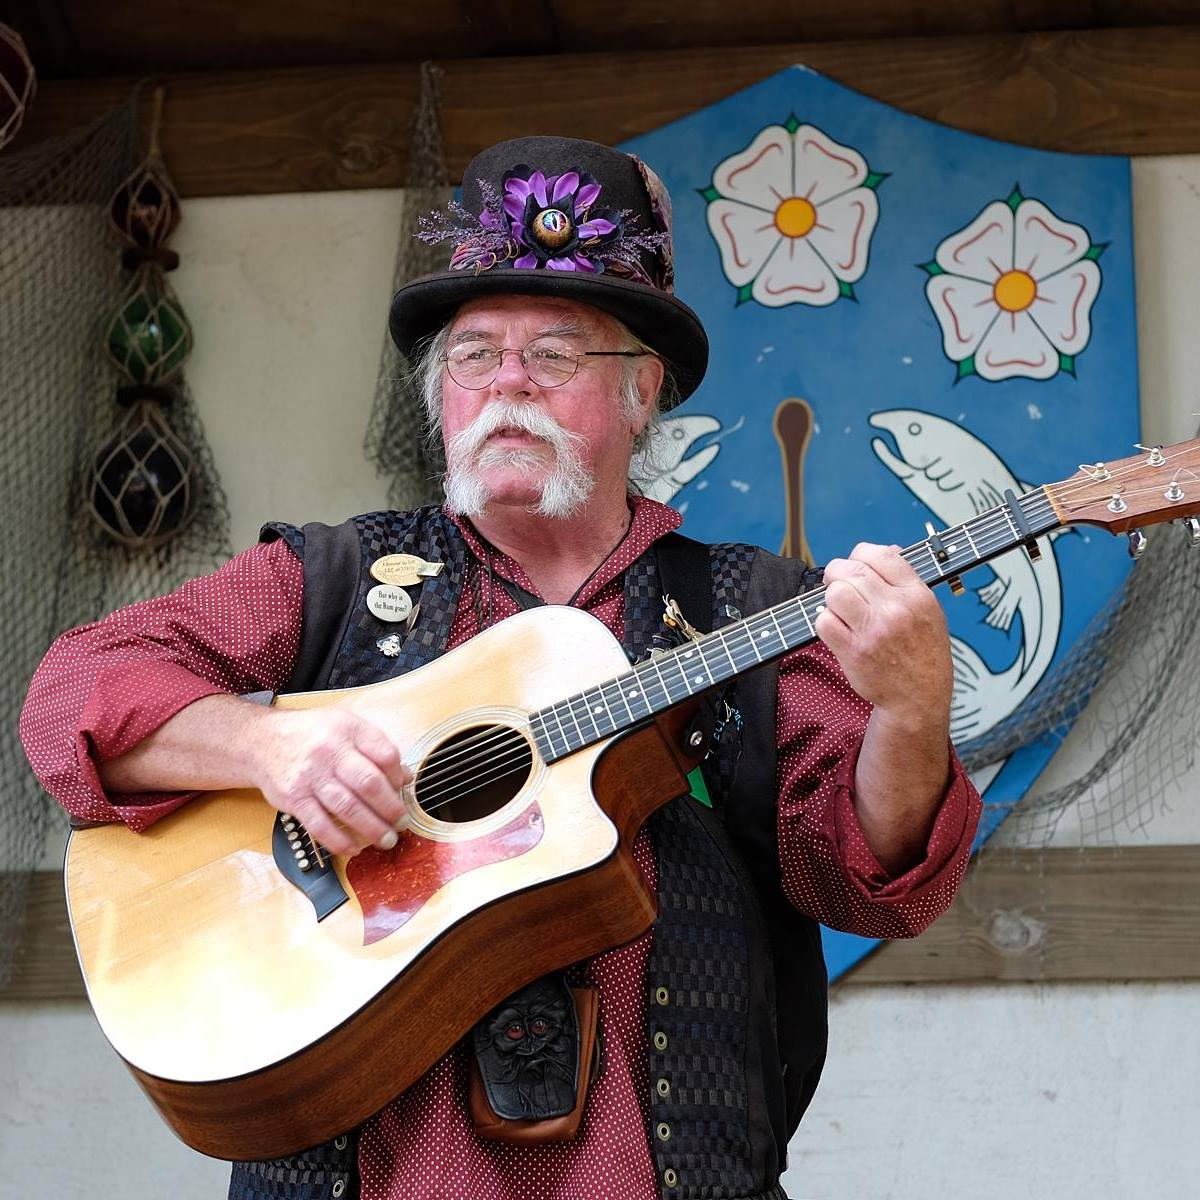 Entertainment: Eddie Jeff Cahill musician minstrel